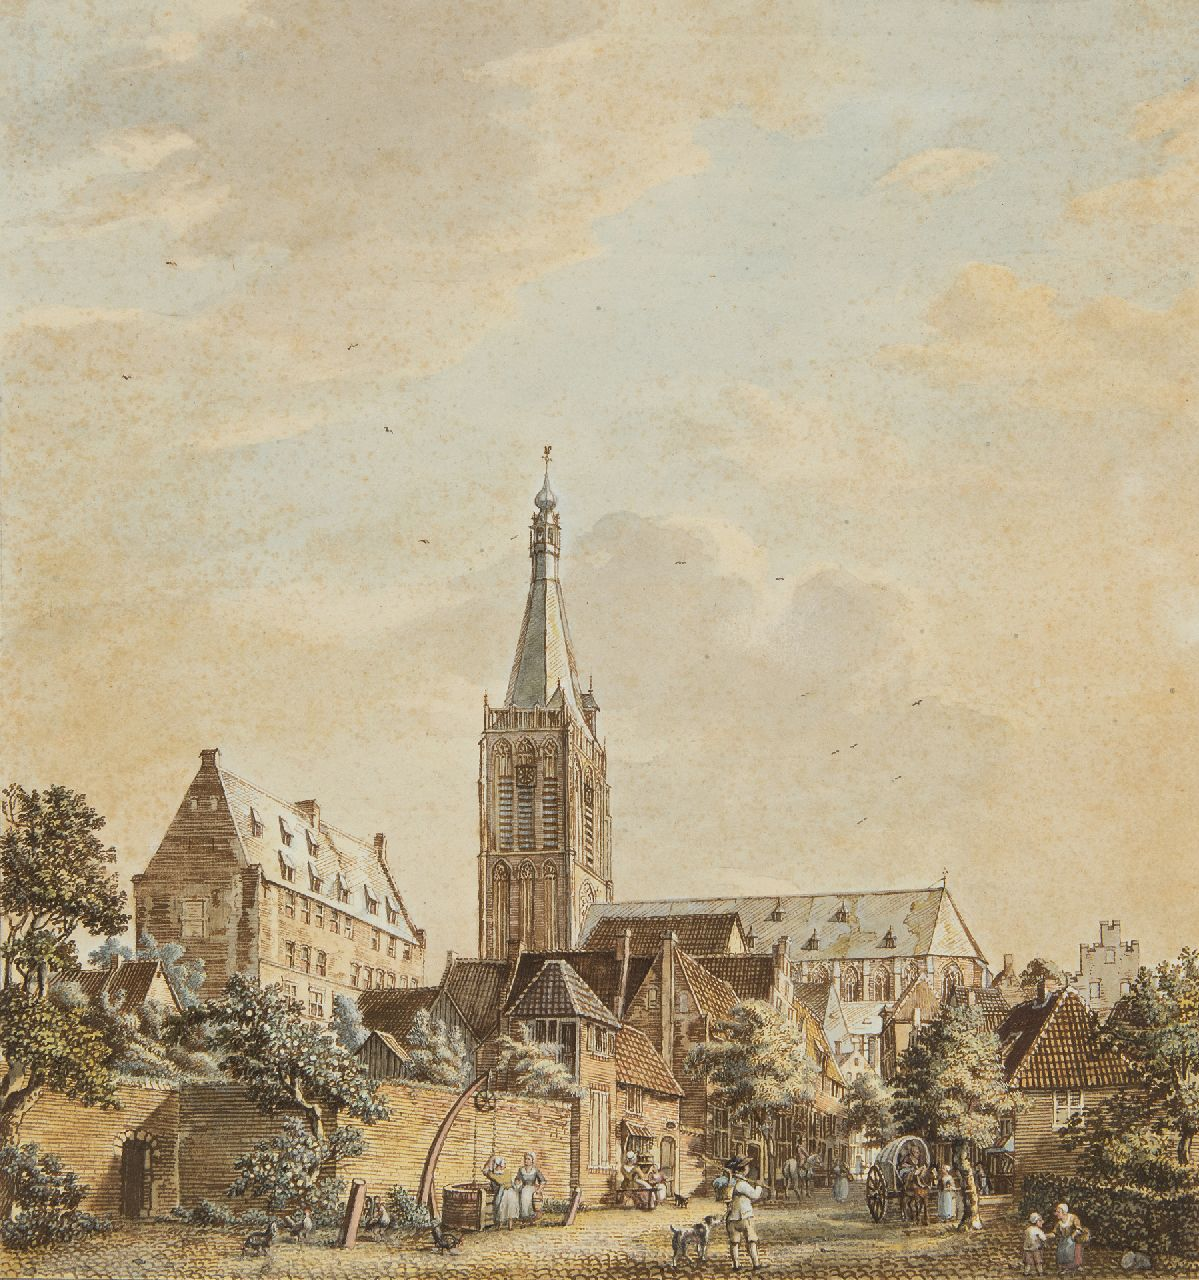 Jan de Beijer | The Grote Kerk and the Klooster in Doesburg, pen, ink and watercolour on paper, 33.7 x 31.7 cm, signed on the reverse and dated on the reverse 10. August: 1772'